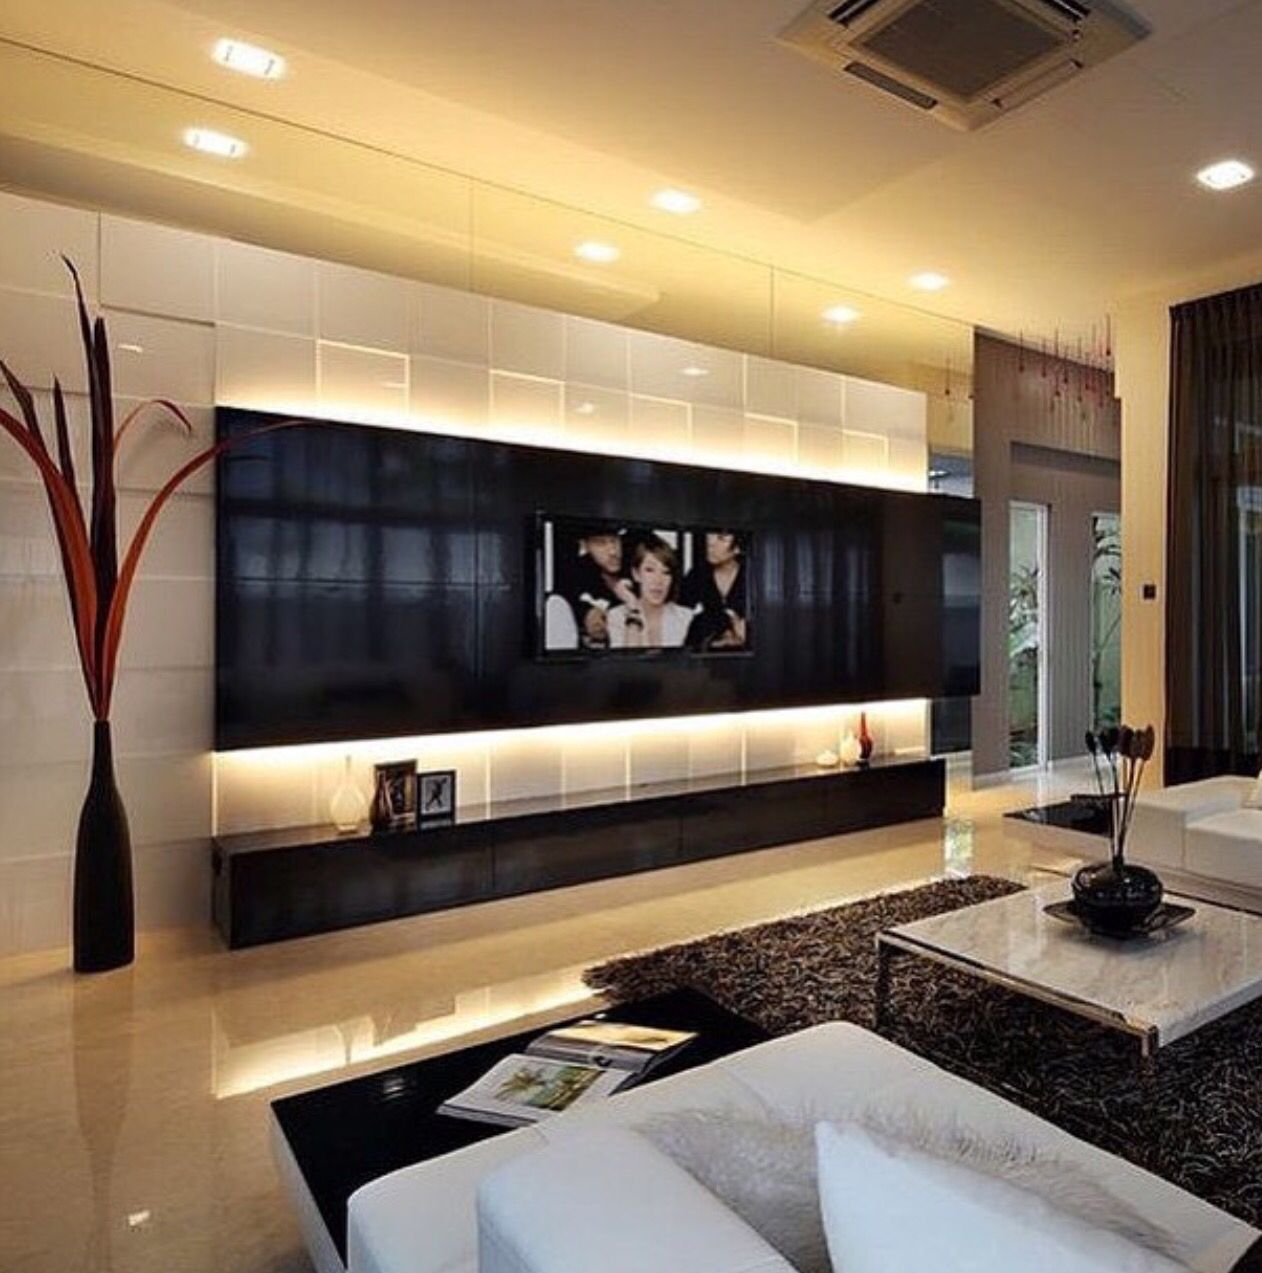 Living Room Theater Fau Phone Number: Home Theater Branco E Preto